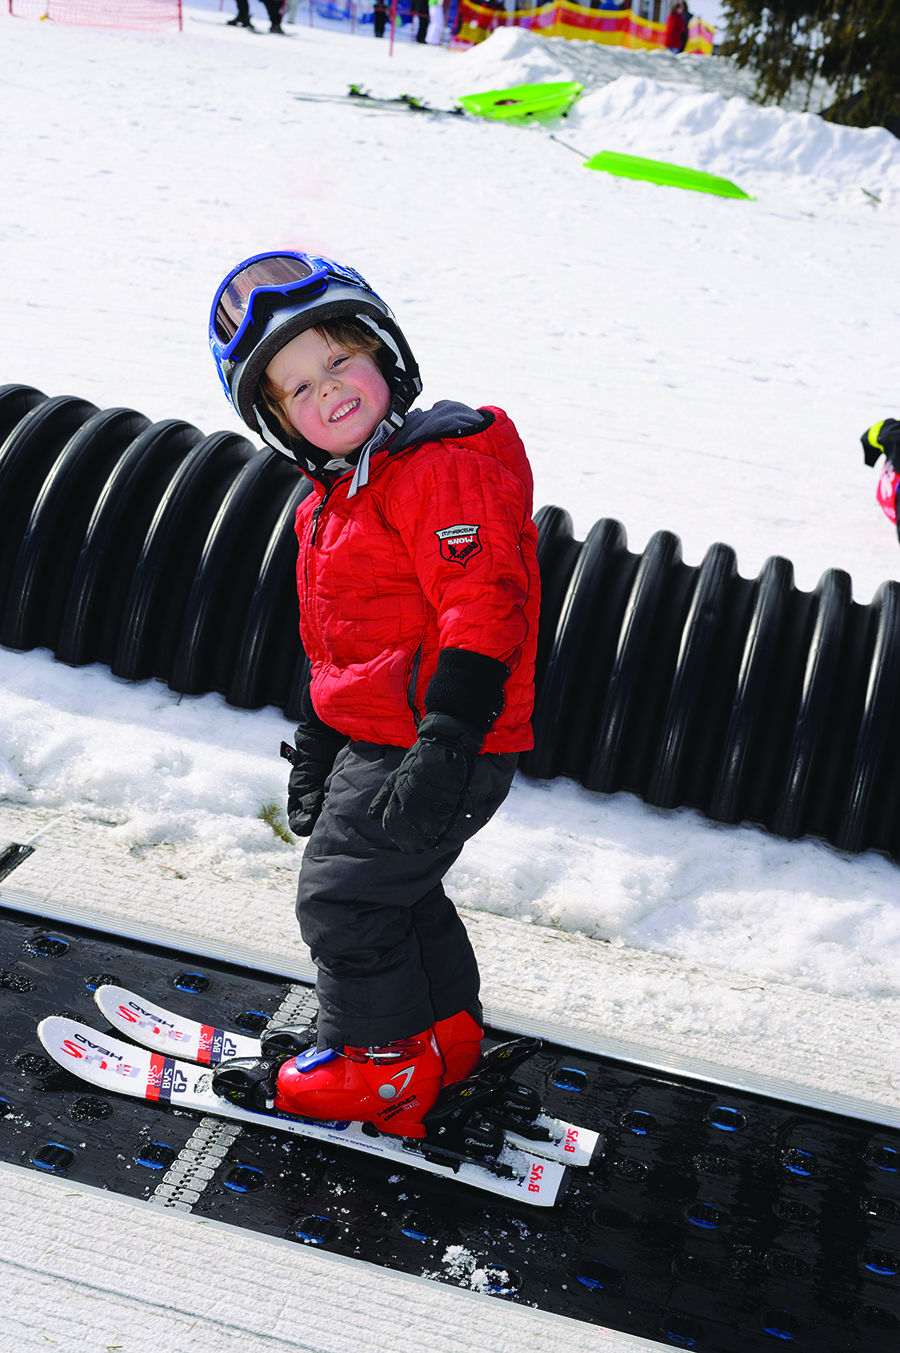 child on ski magic carpet